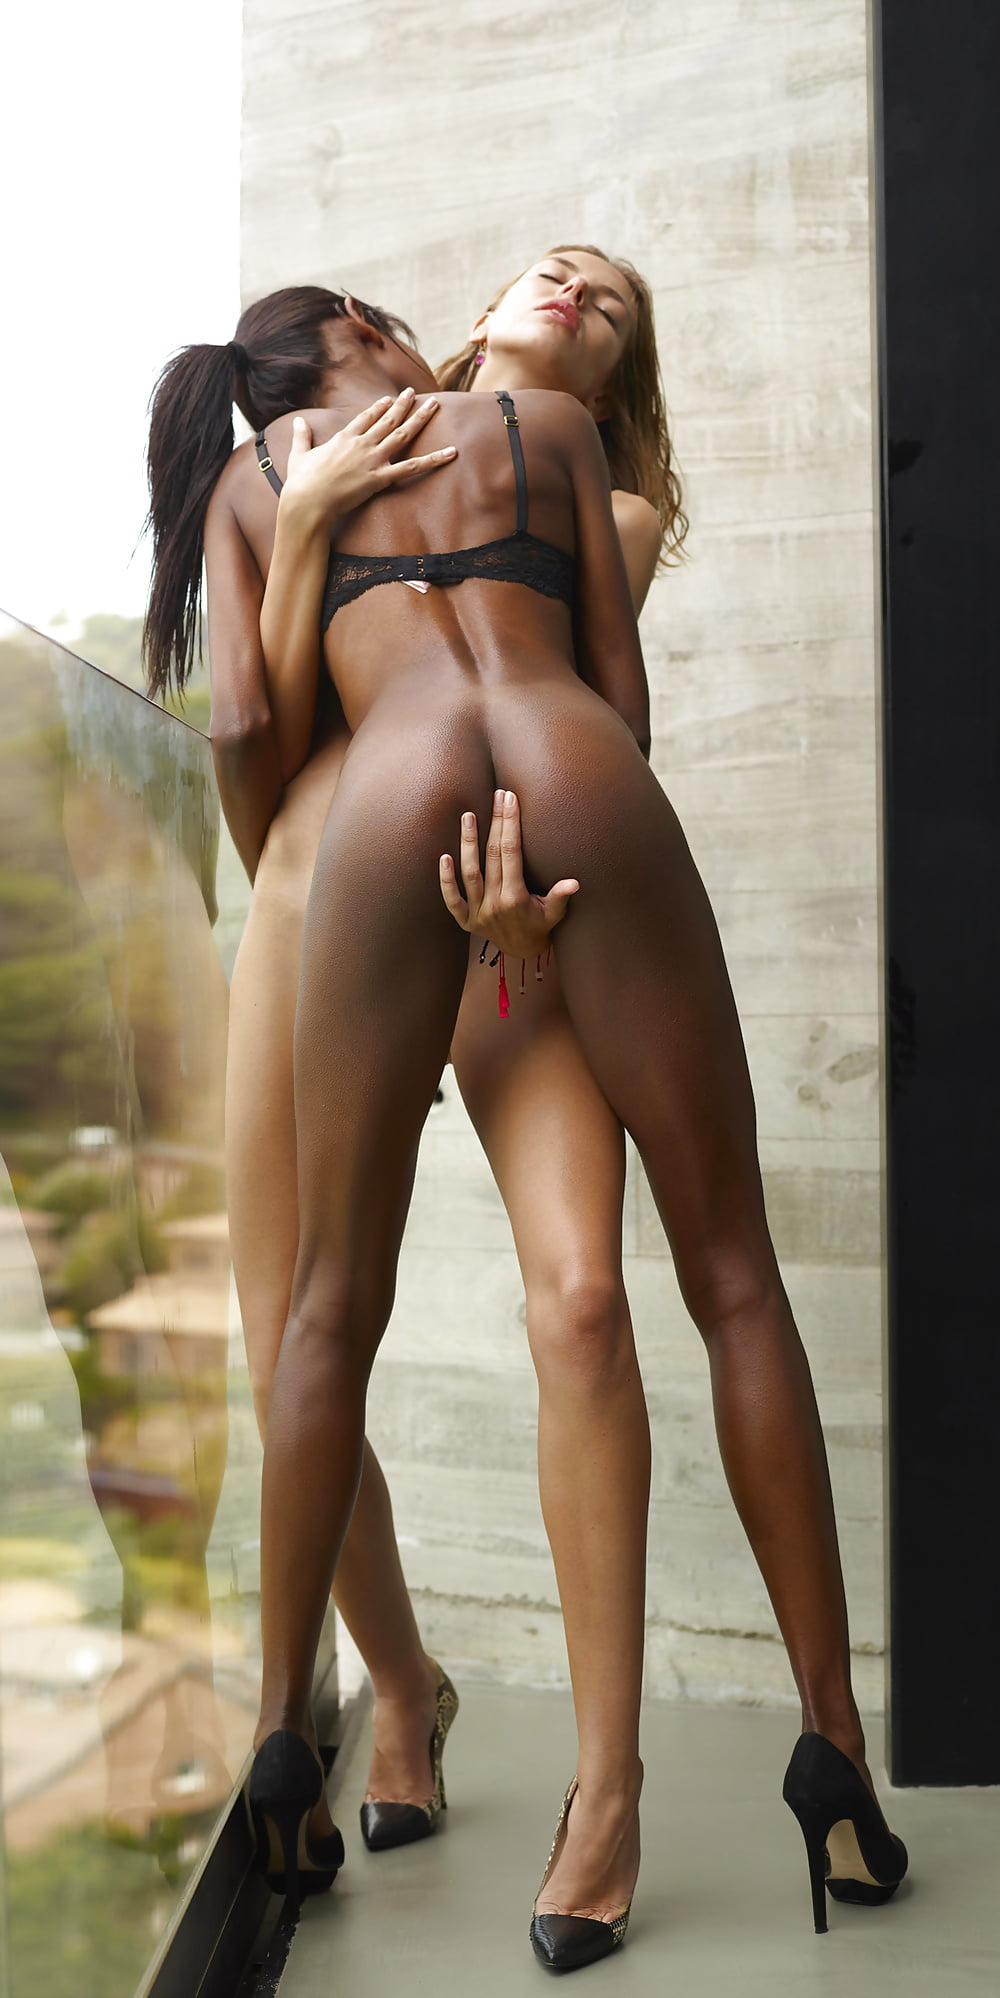 Tall skinny african girls nude online sex pics